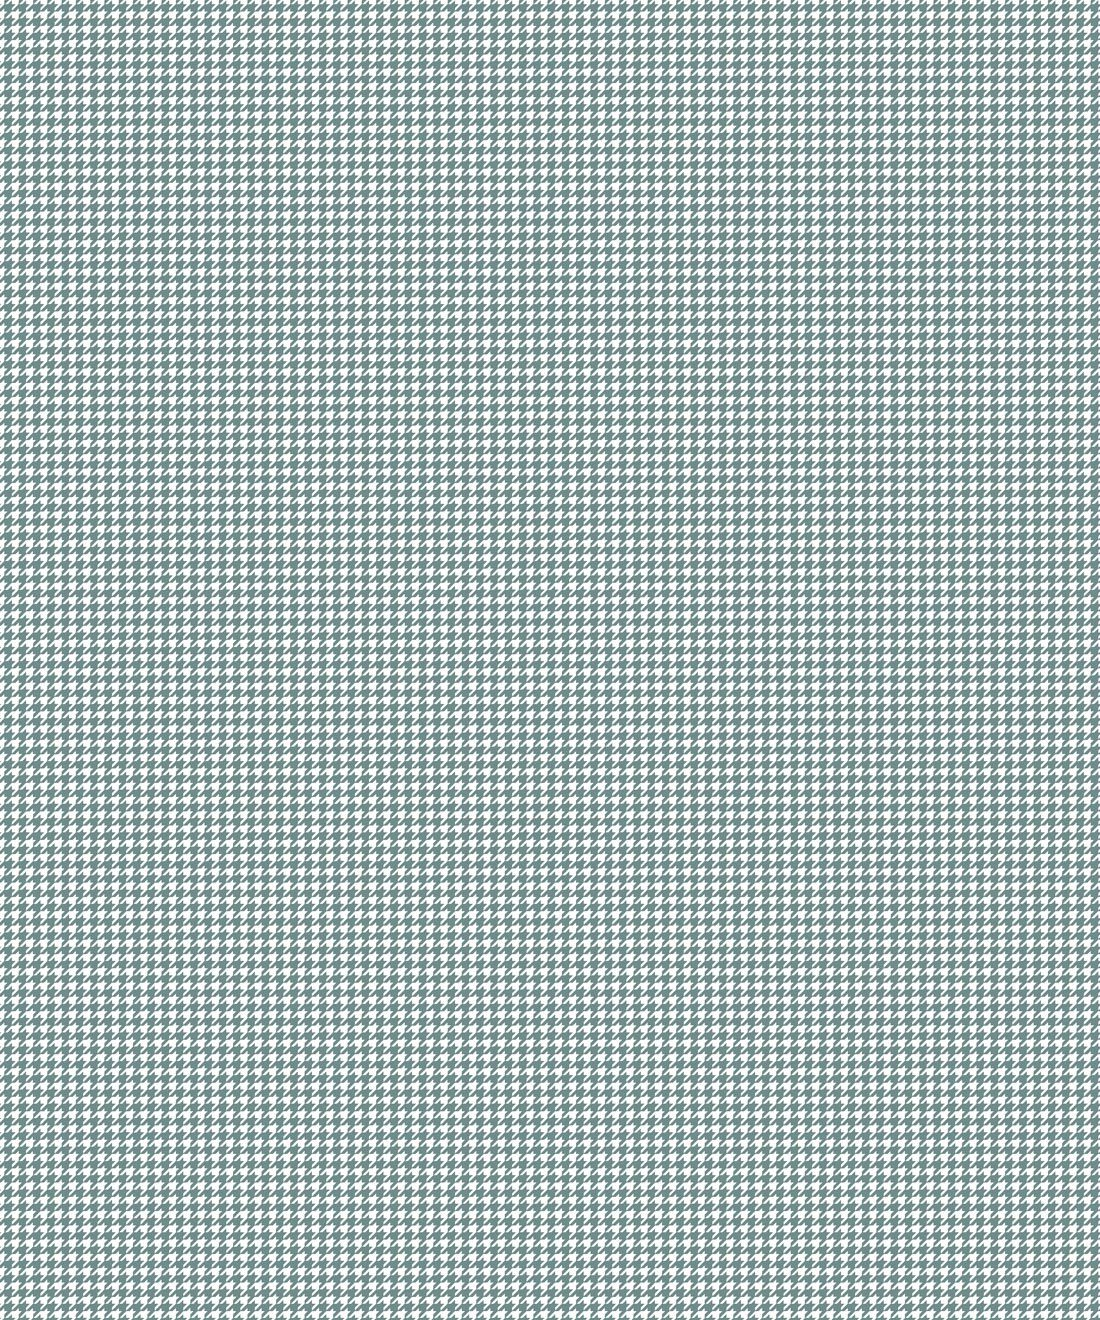 Houndstooth Wallpaper • Dogstooth Wallpaper • Pewter •Swatch